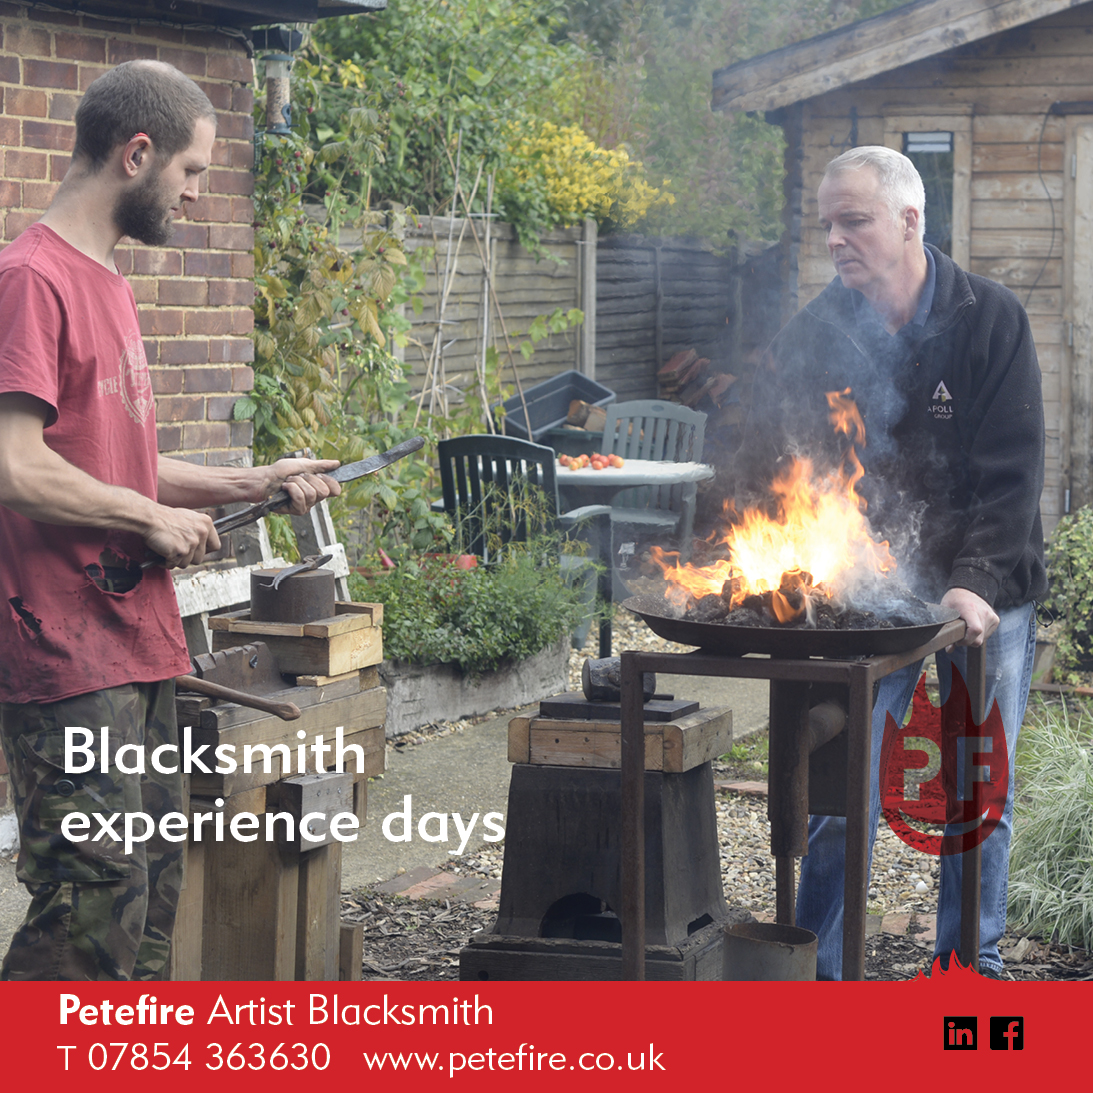 Petefire Artist Blacksmith, Experience Days